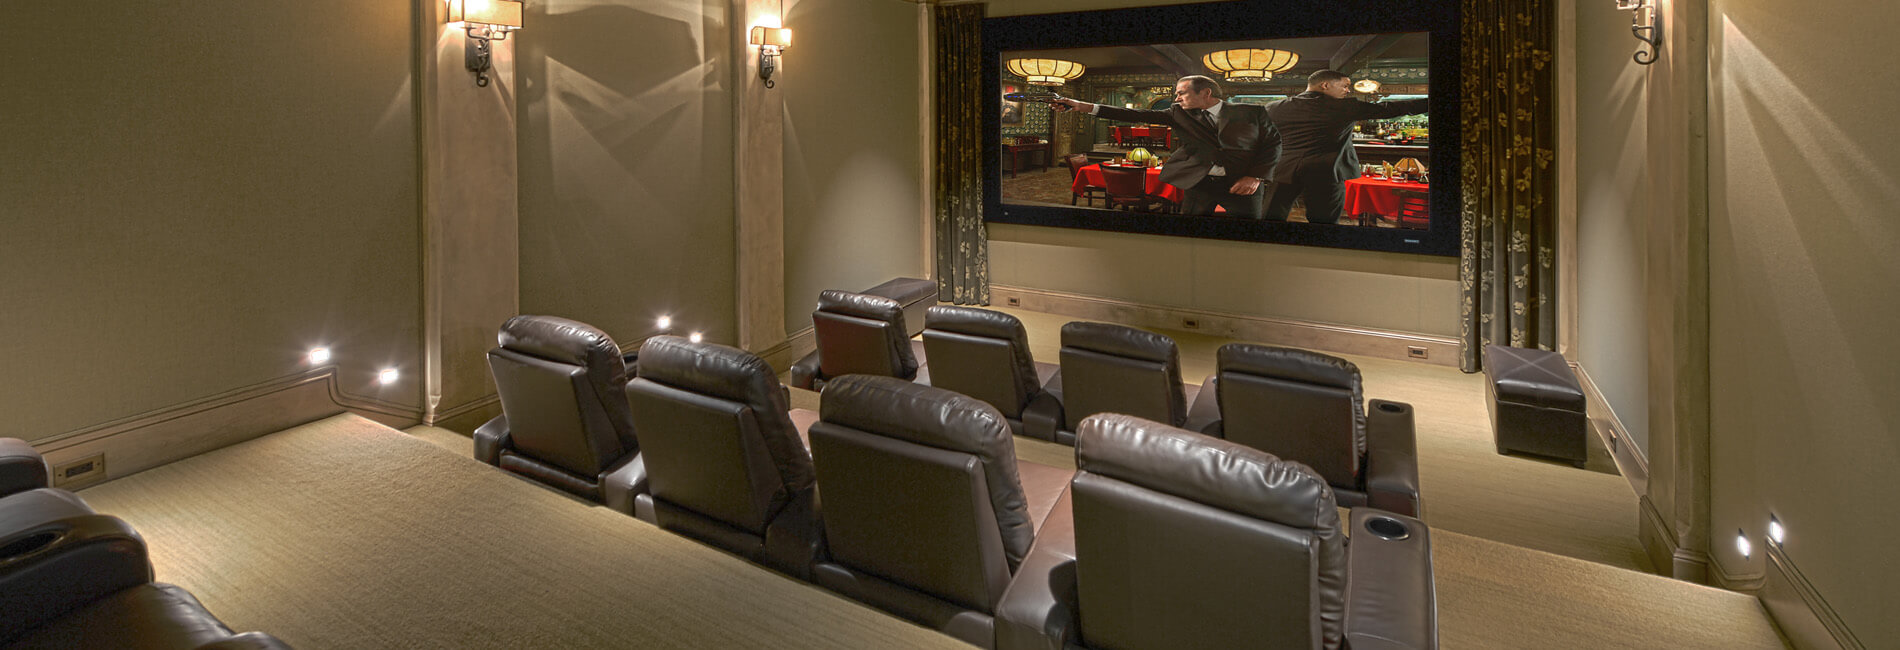 Home Theatre Seating Theater